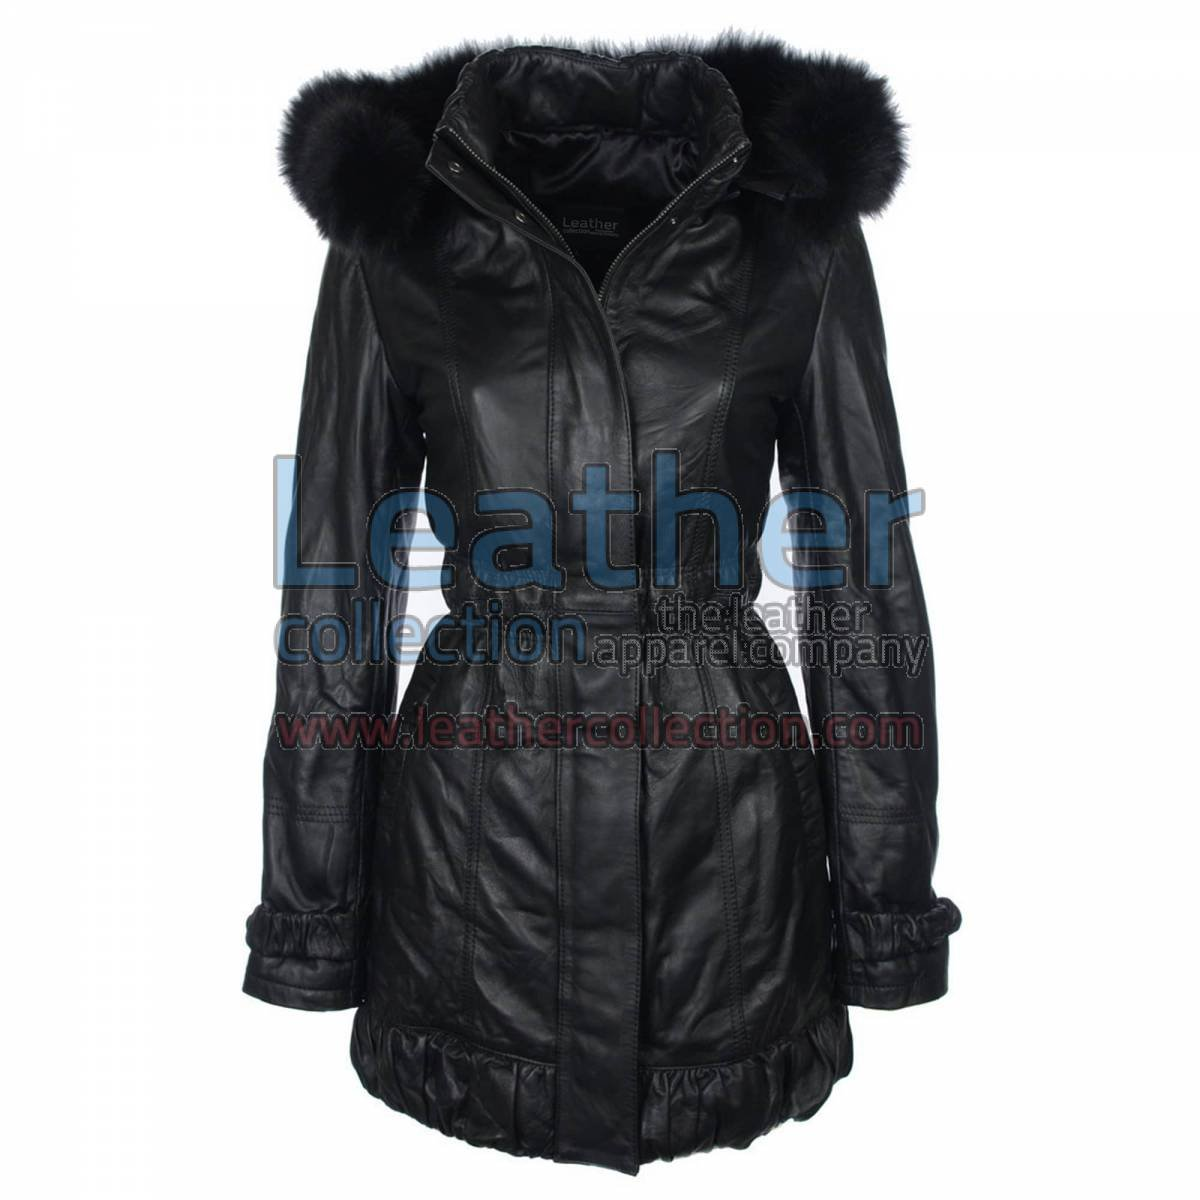 Fur Hooded Leather Coat for Ladies